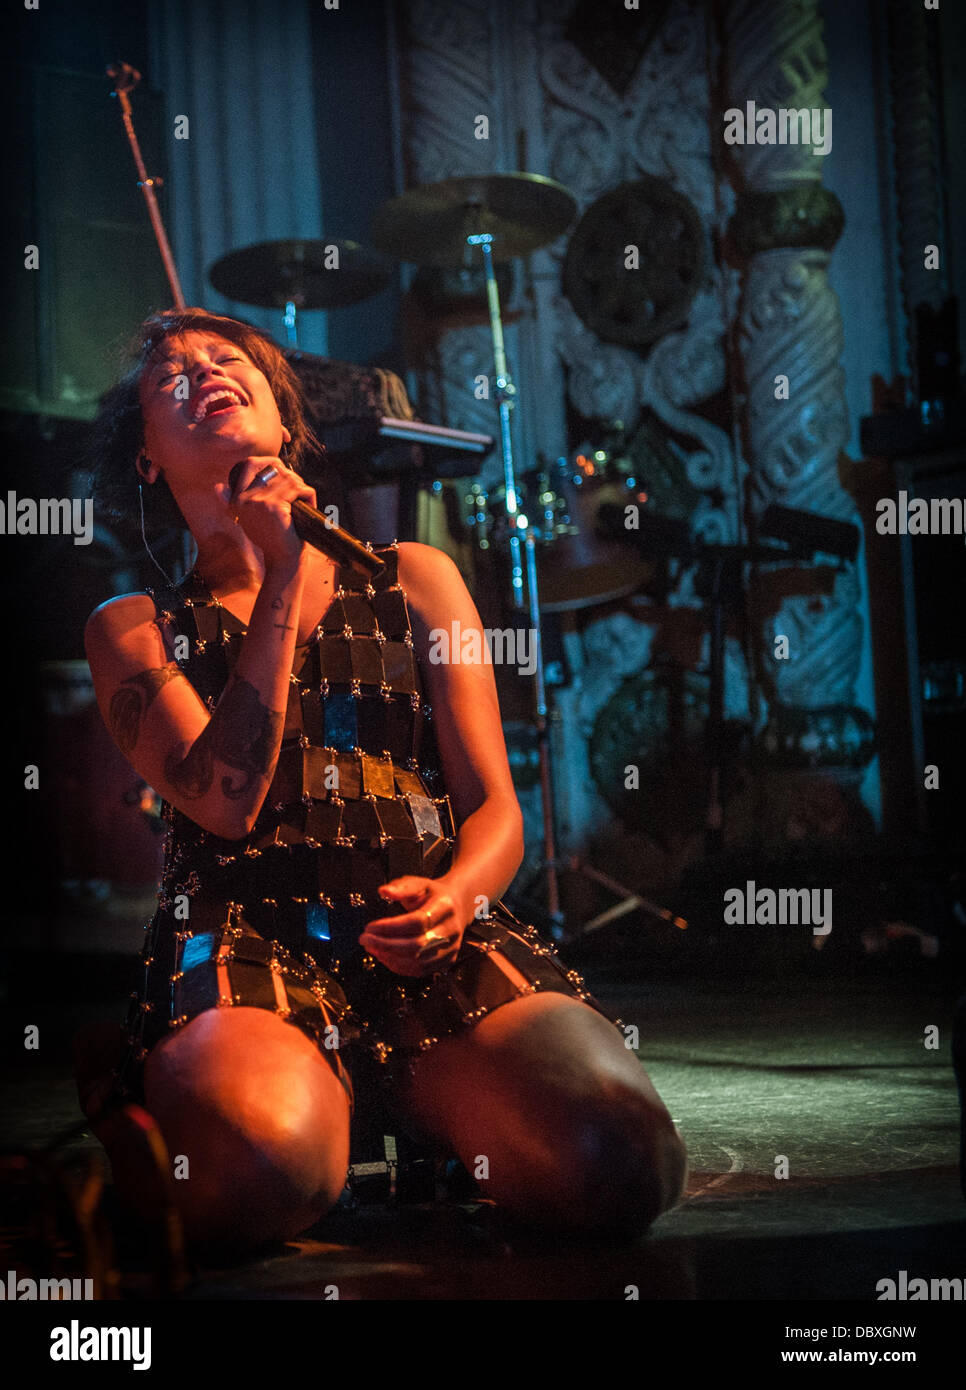 Aino Jawo of Icona Pop performing live at Metro in Chicago, IL July 31, 2013 - Stock Image